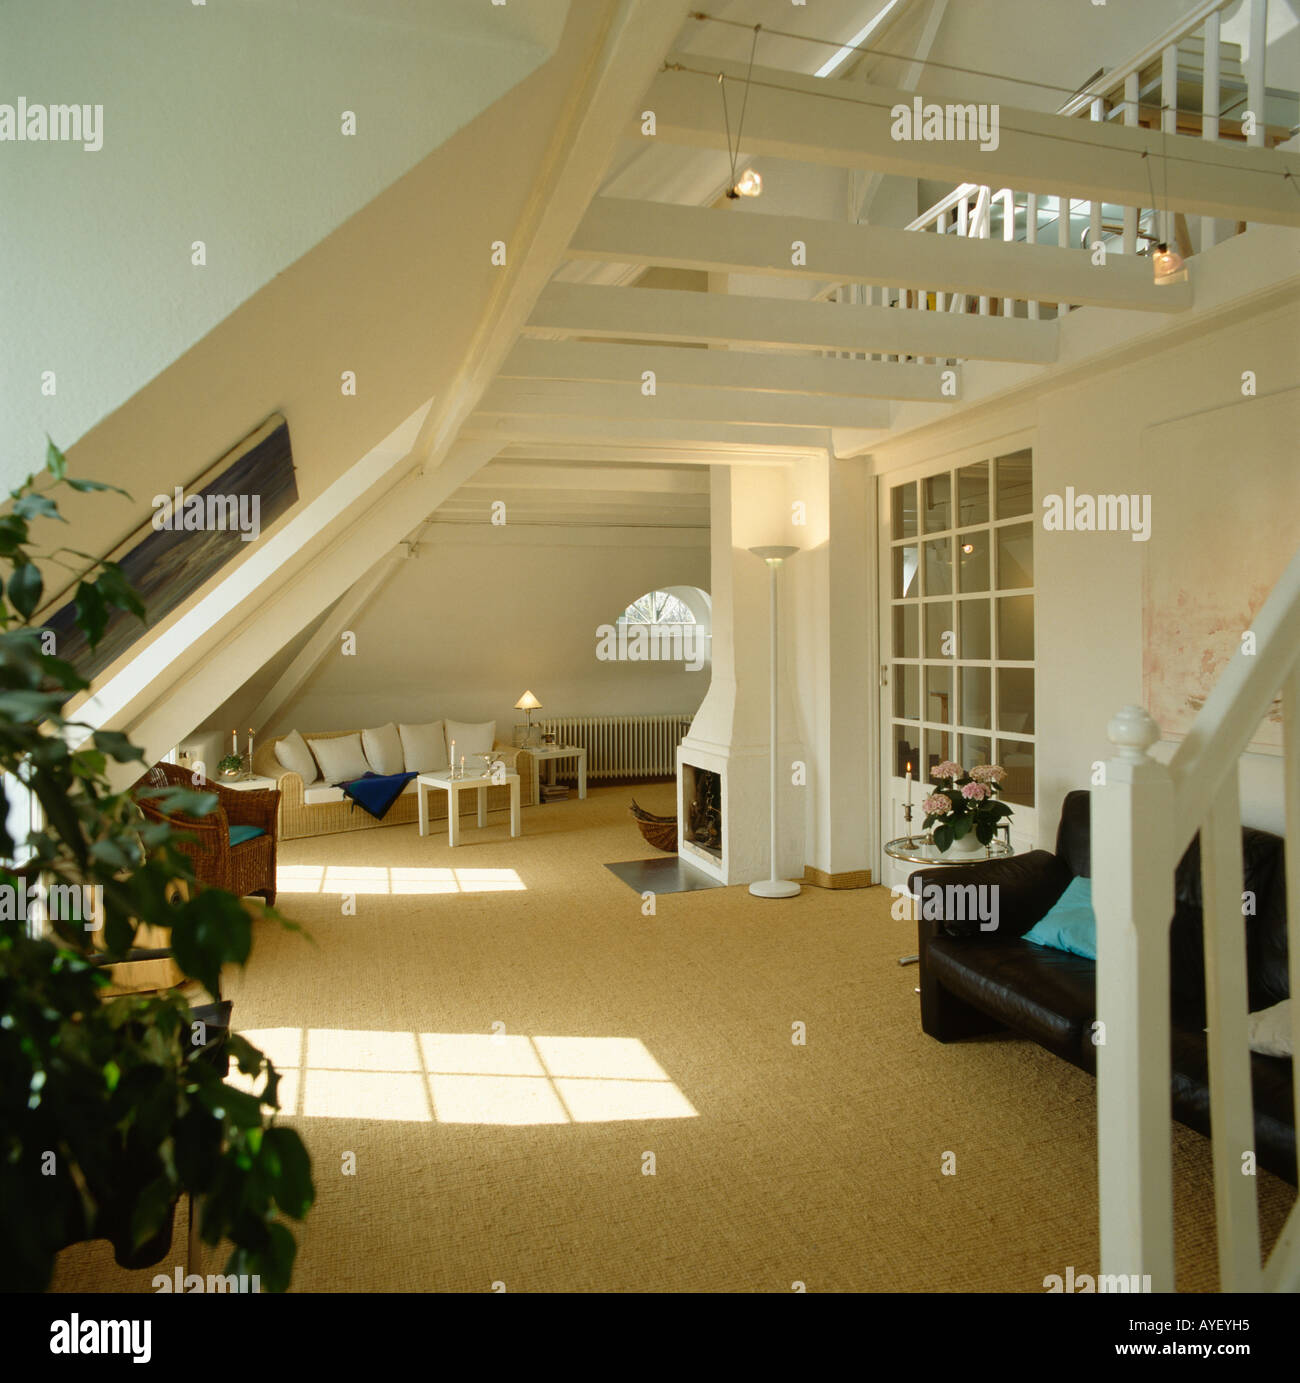 Mezzanine Loft Conversion cream carpet in open-plan white living room in modern country loft